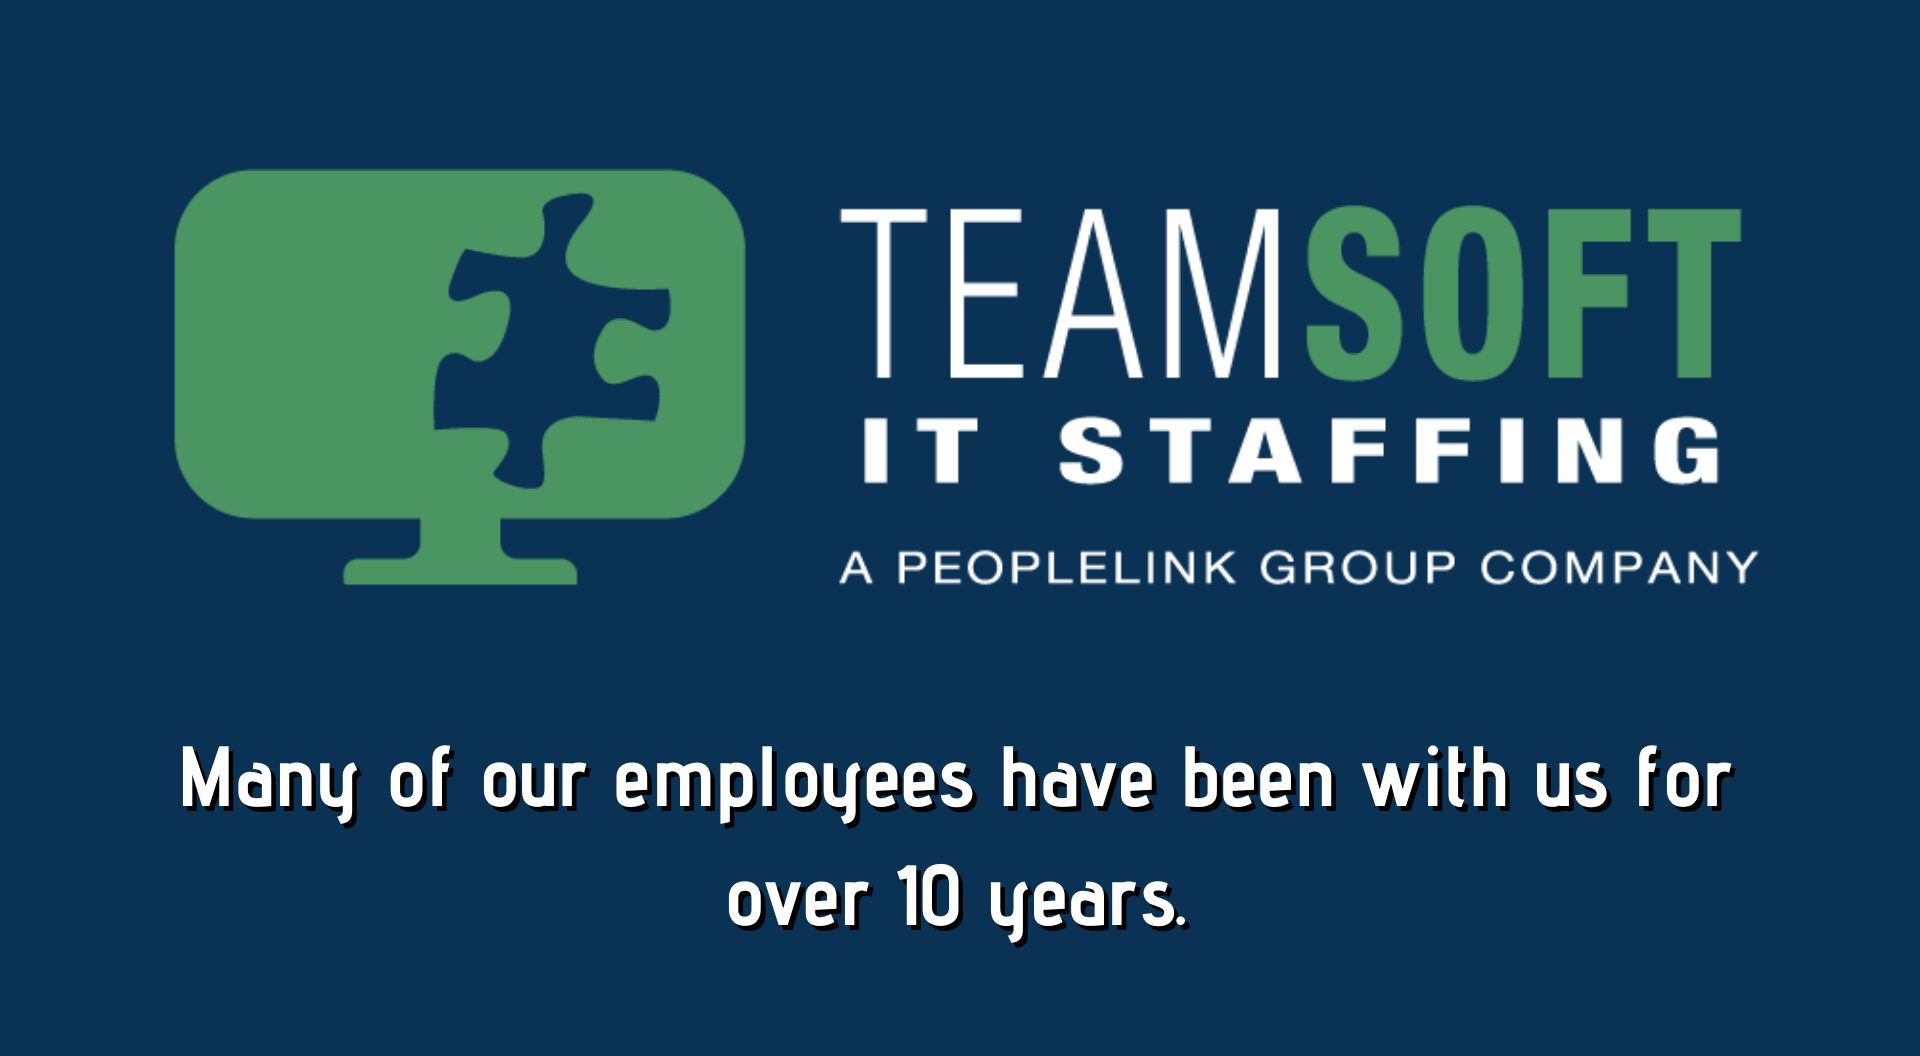 Many of our employees have been with us for over 10 years. 2019